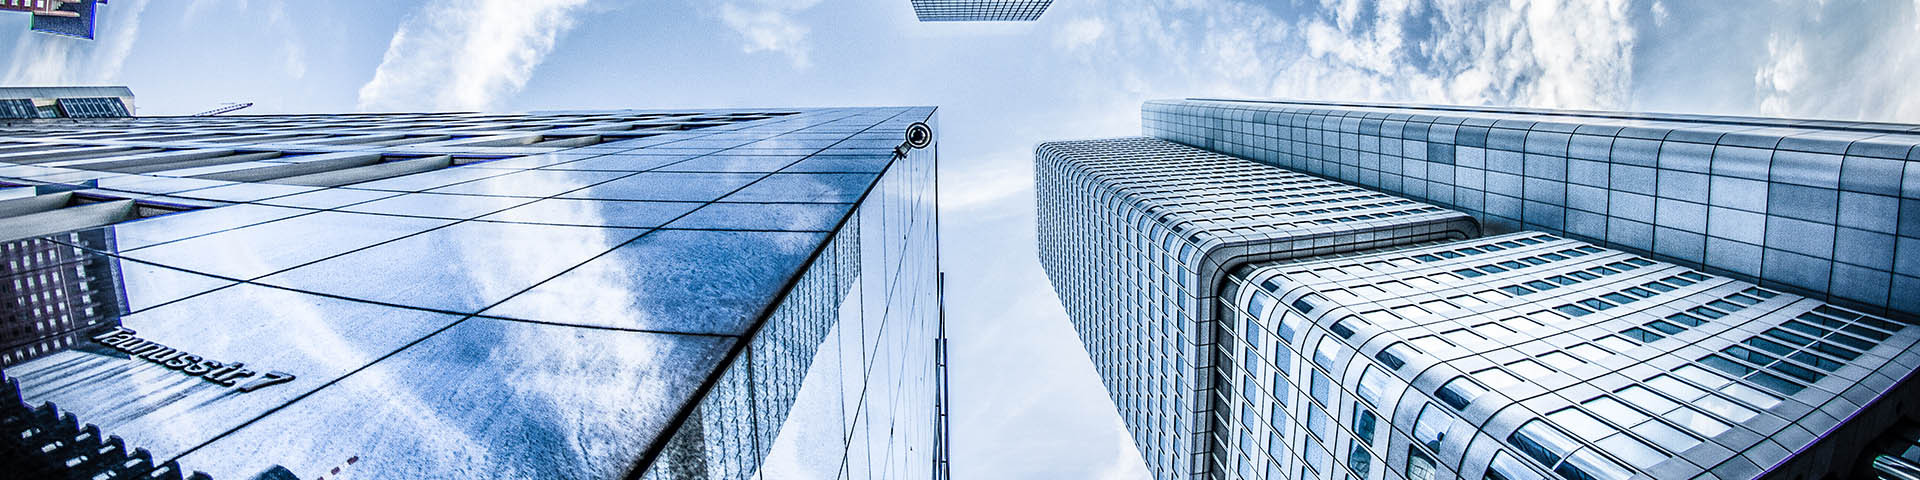 Commercial Real Estate Investments